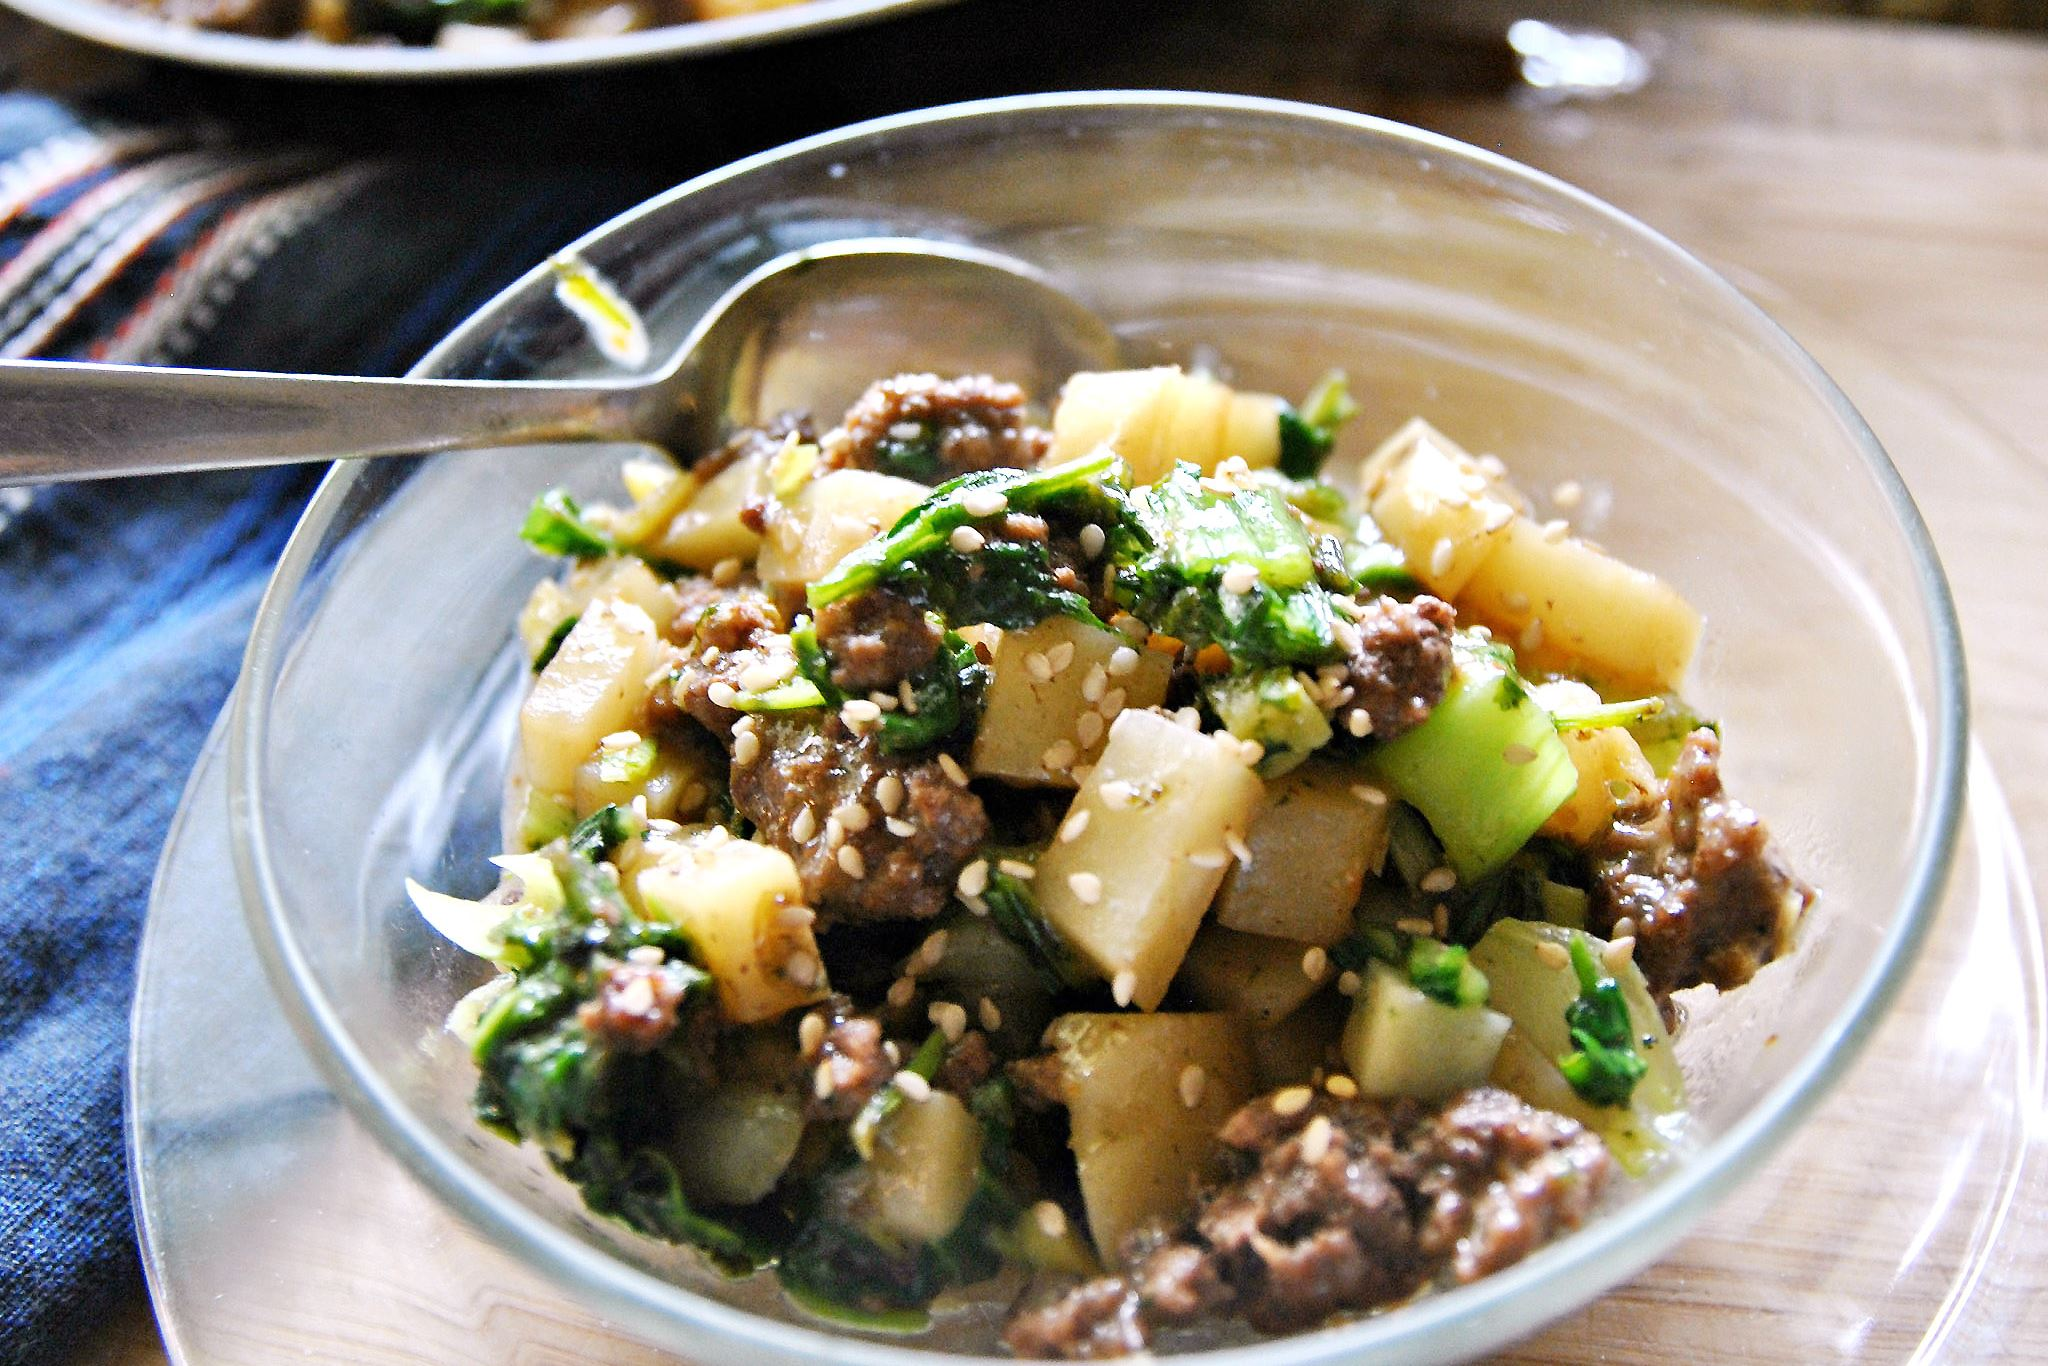 dinnerinabox0309-beef-hot-pot-2 Peach Dish's Beef Hot Pot.